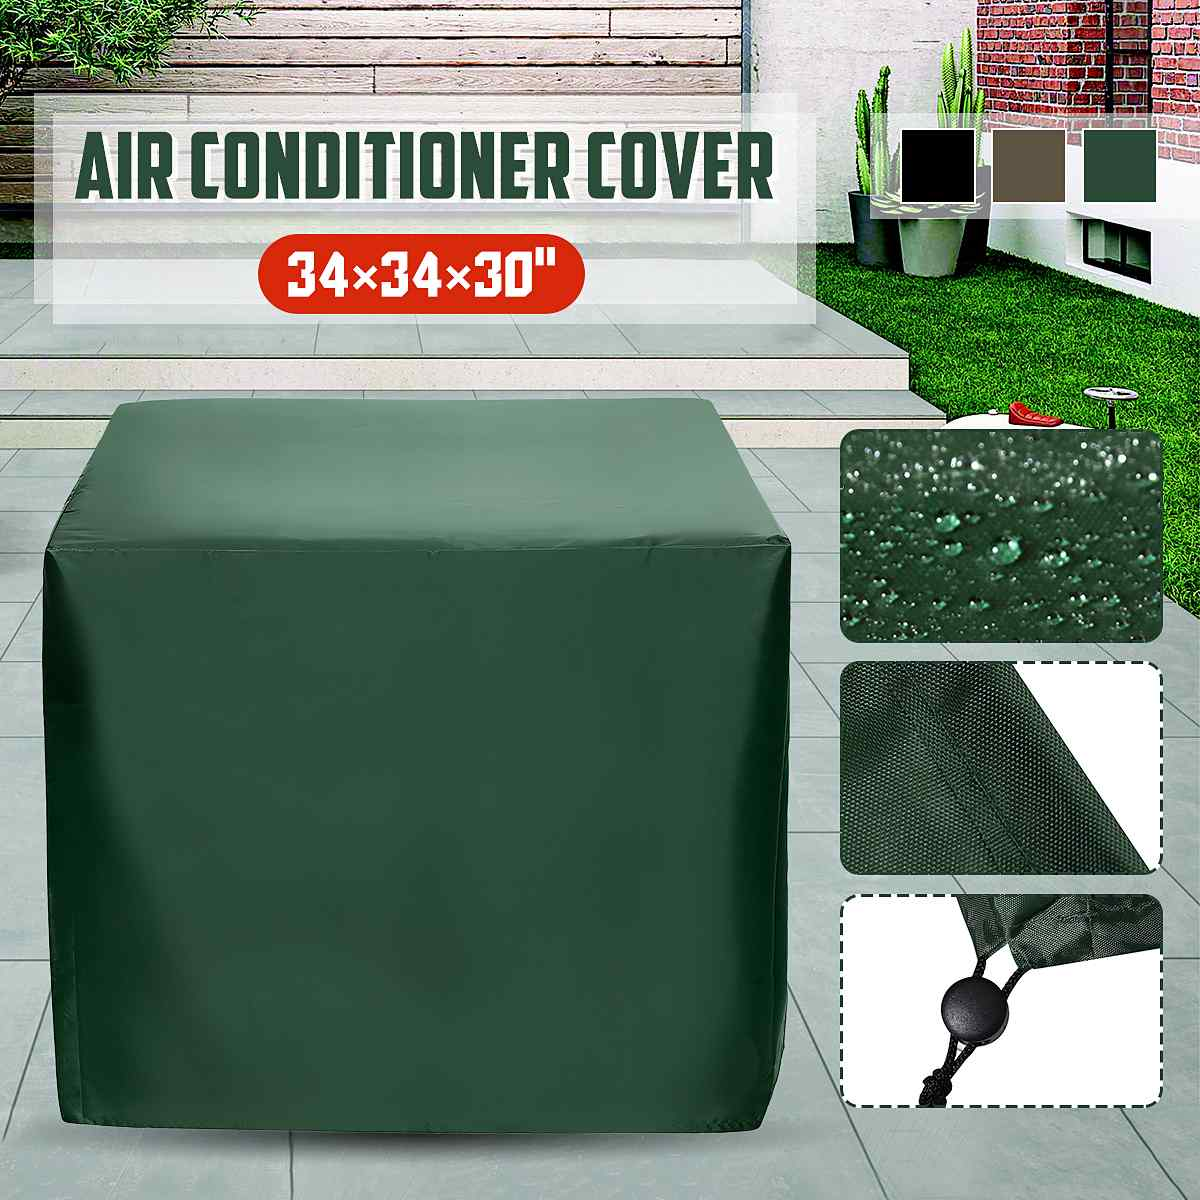 1pcs Outdoor Cover Waterproof Furniture Air Conditioner Sofa Chair Table Cover Garden Patio Beach Protector Rain Snow Dust Cover